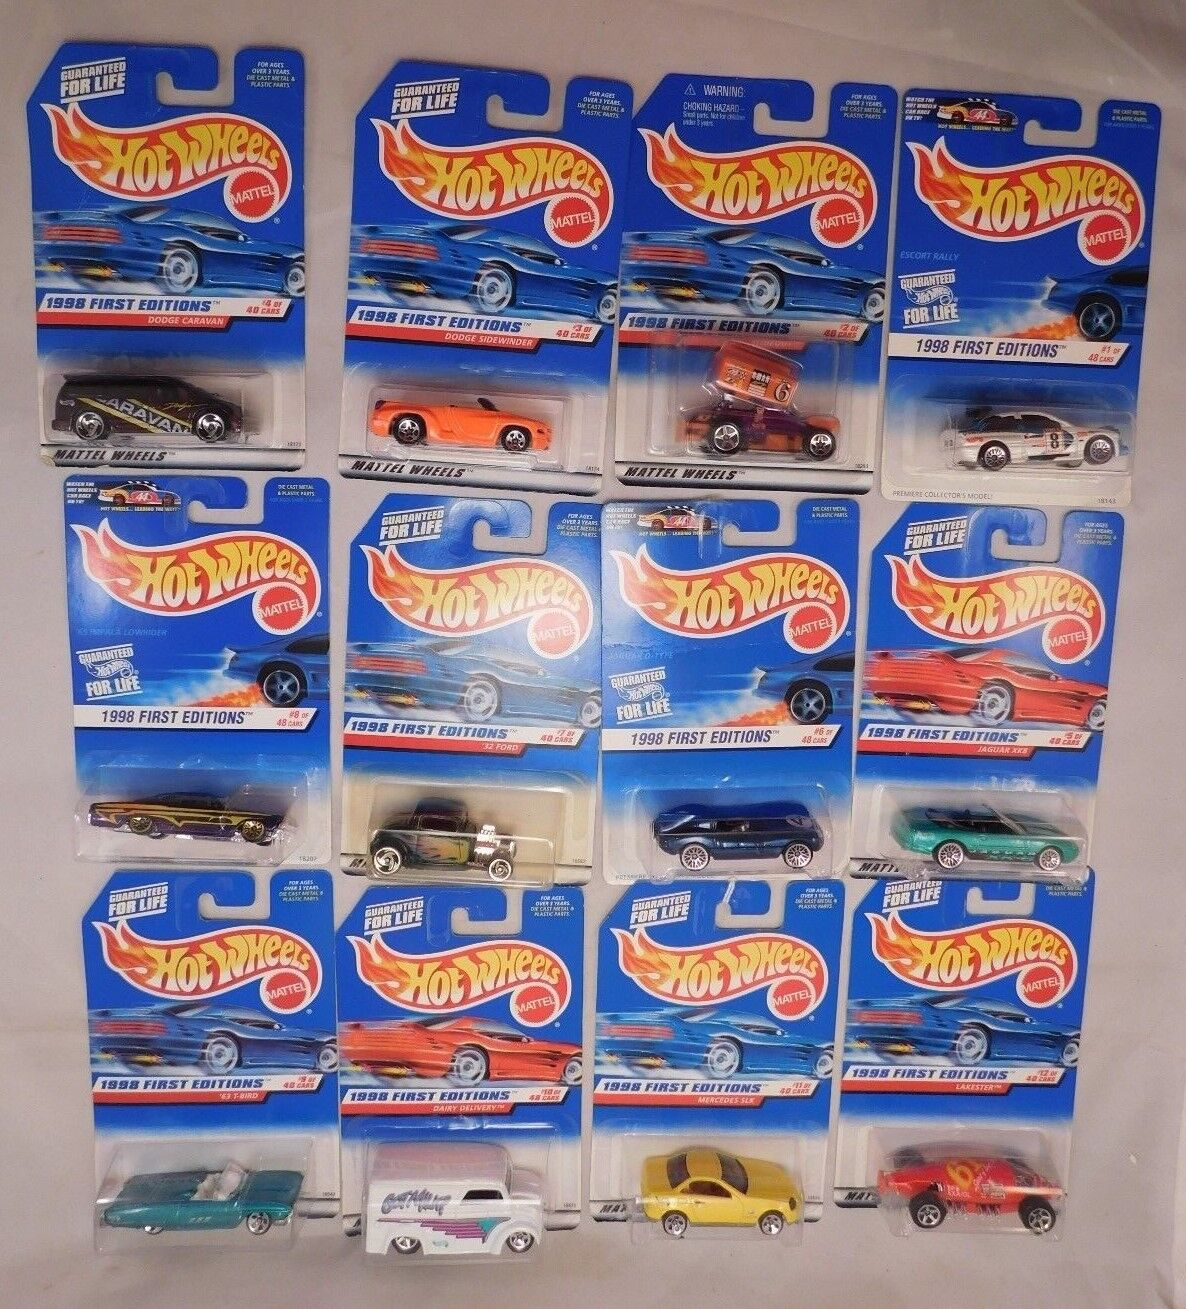 Lot of 42 Hot Wheels 1998 First Editions Series COMPLETE plus 2 variations  MIP